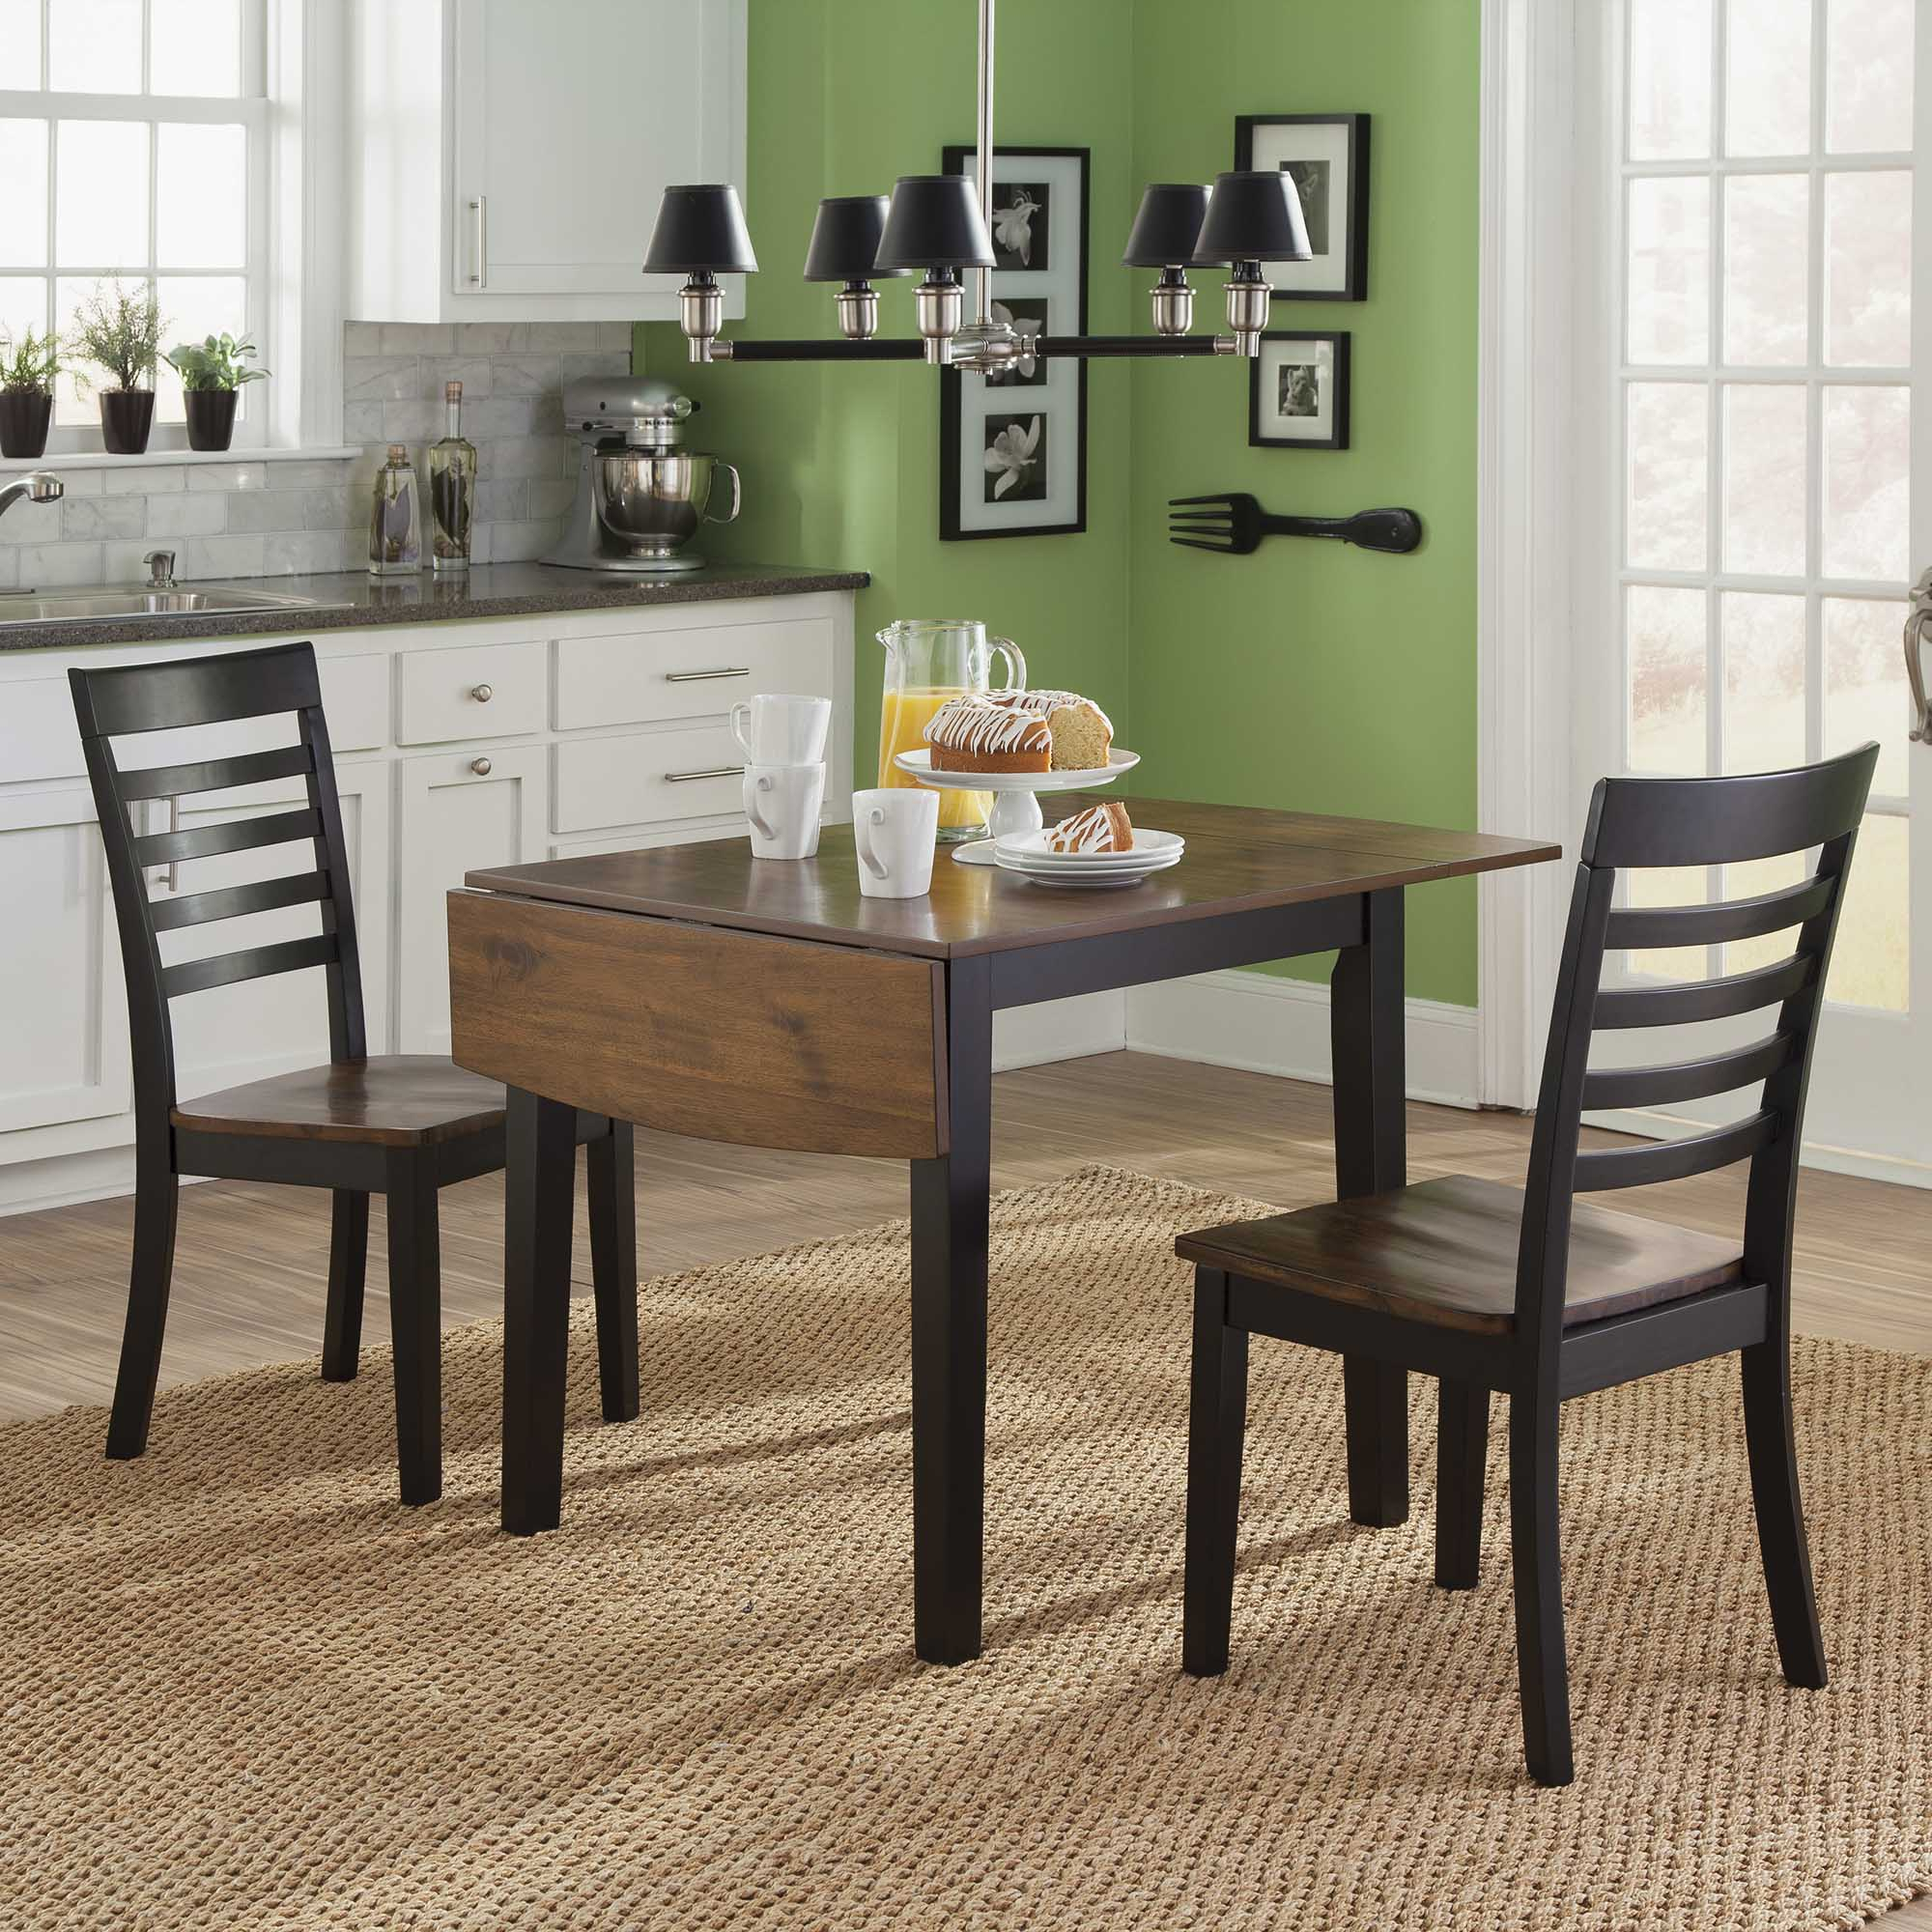 Dining | Liberty Regarding Latest Springfield 3 Piece Dining Sets (View 11 of 20)